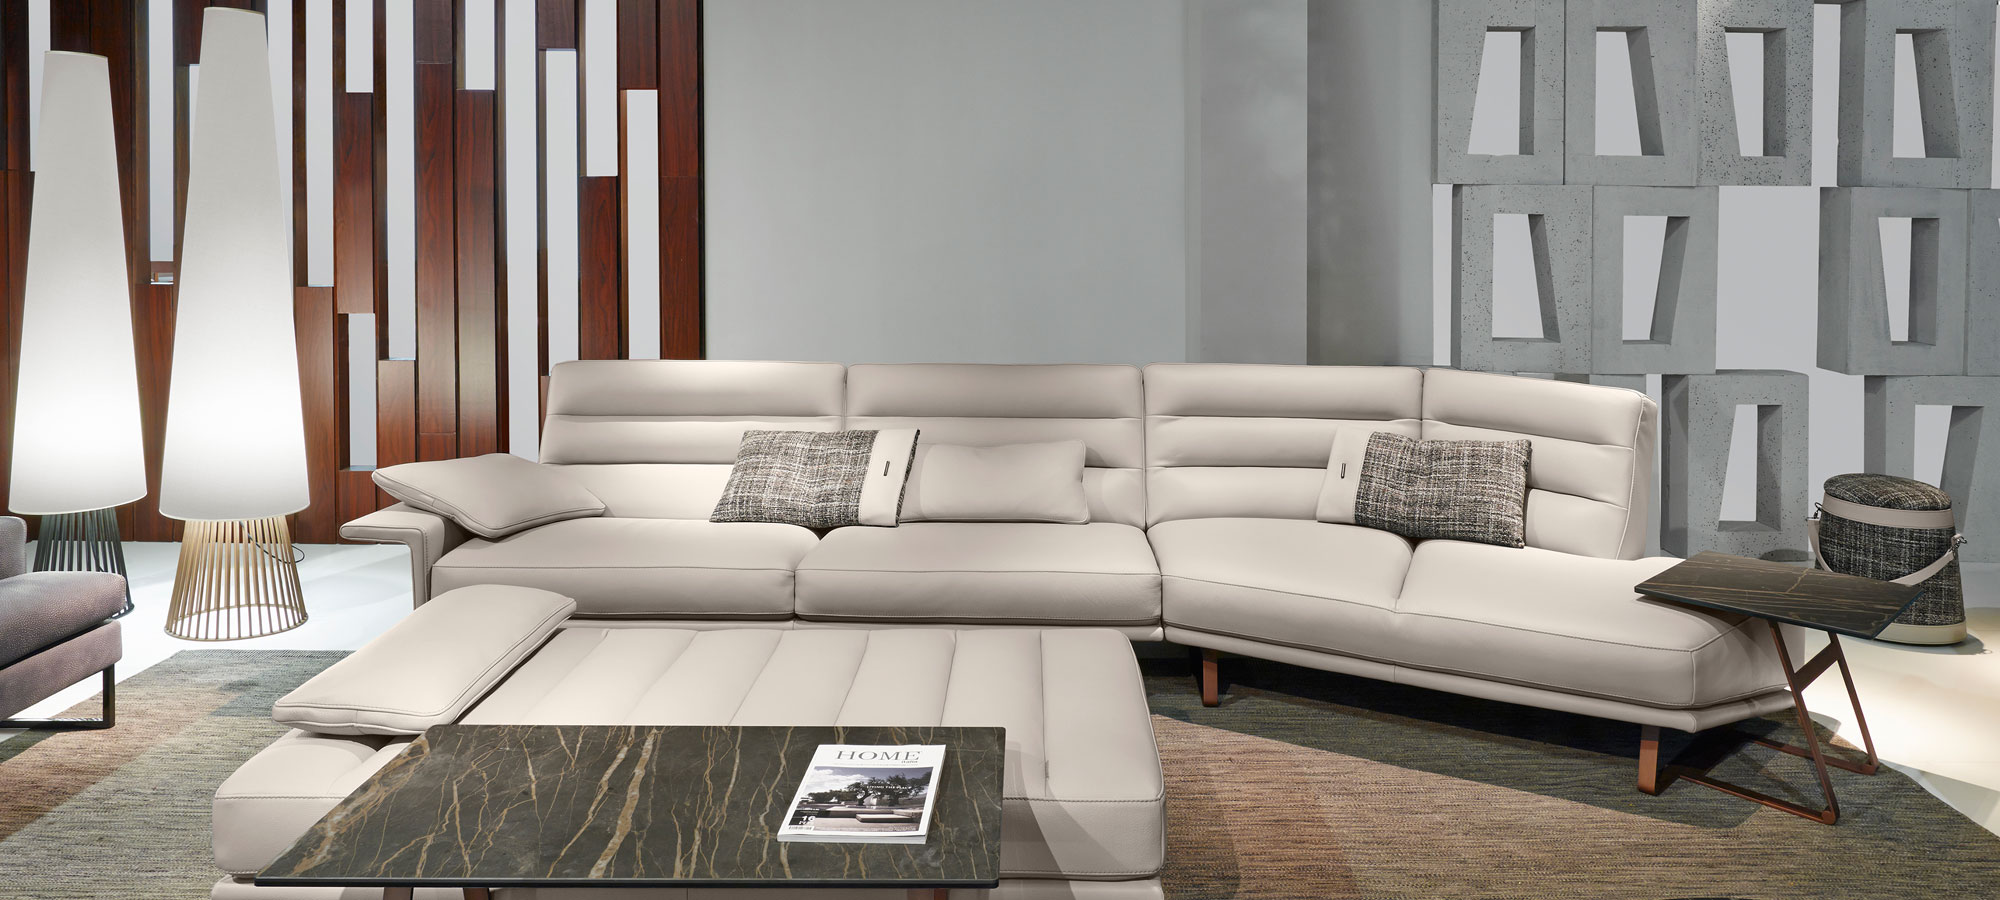 Renegade-2-sofa-gamma-italian-leather-new-trend-luxury